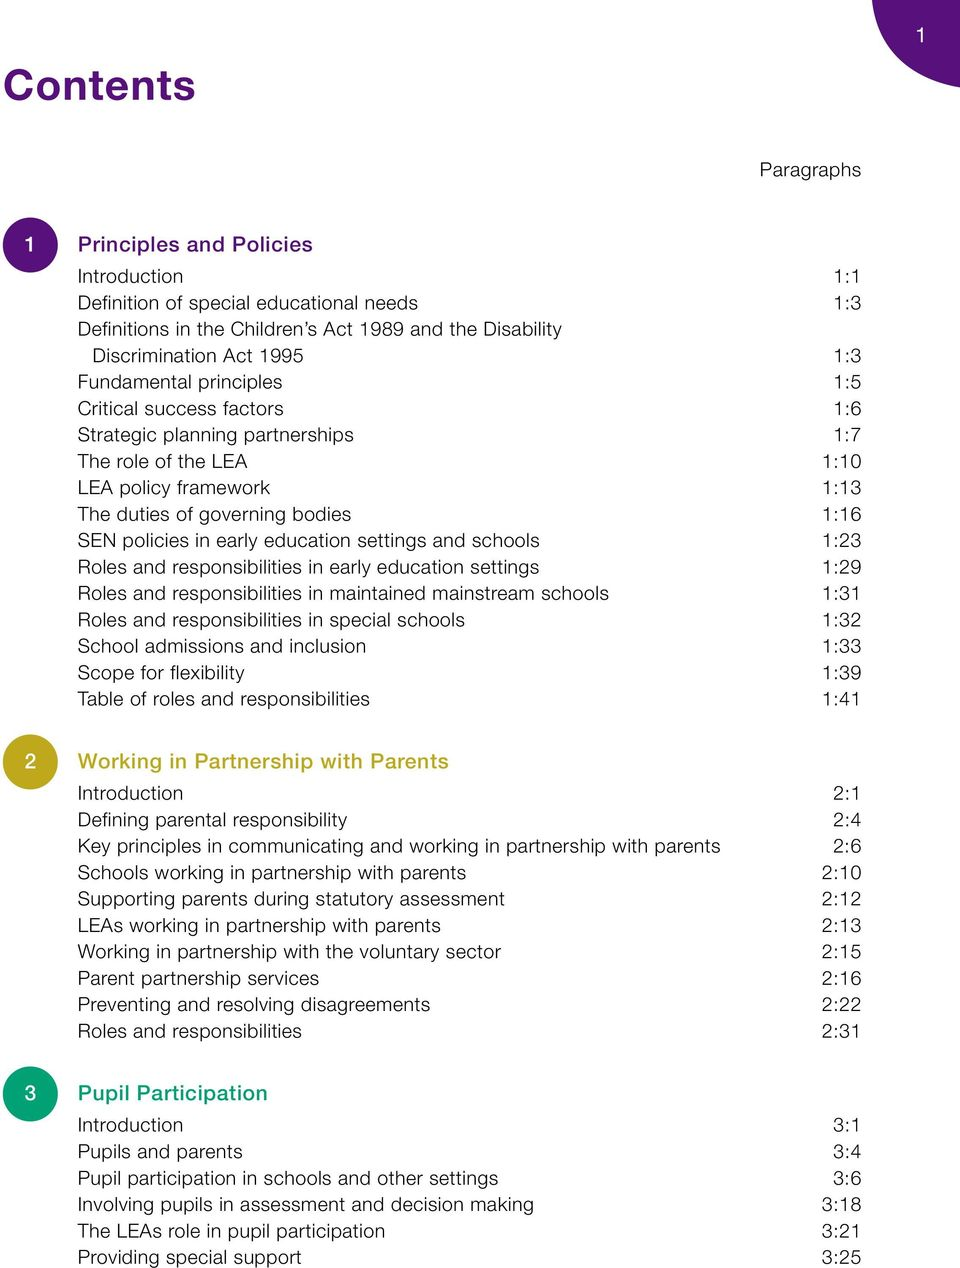 early education settings and schools 1:23 Roles and responsibilities in early education settings 1:29 Roles and responsibilities in maintained mainstream schools 1:31 Roles and responsibilities in